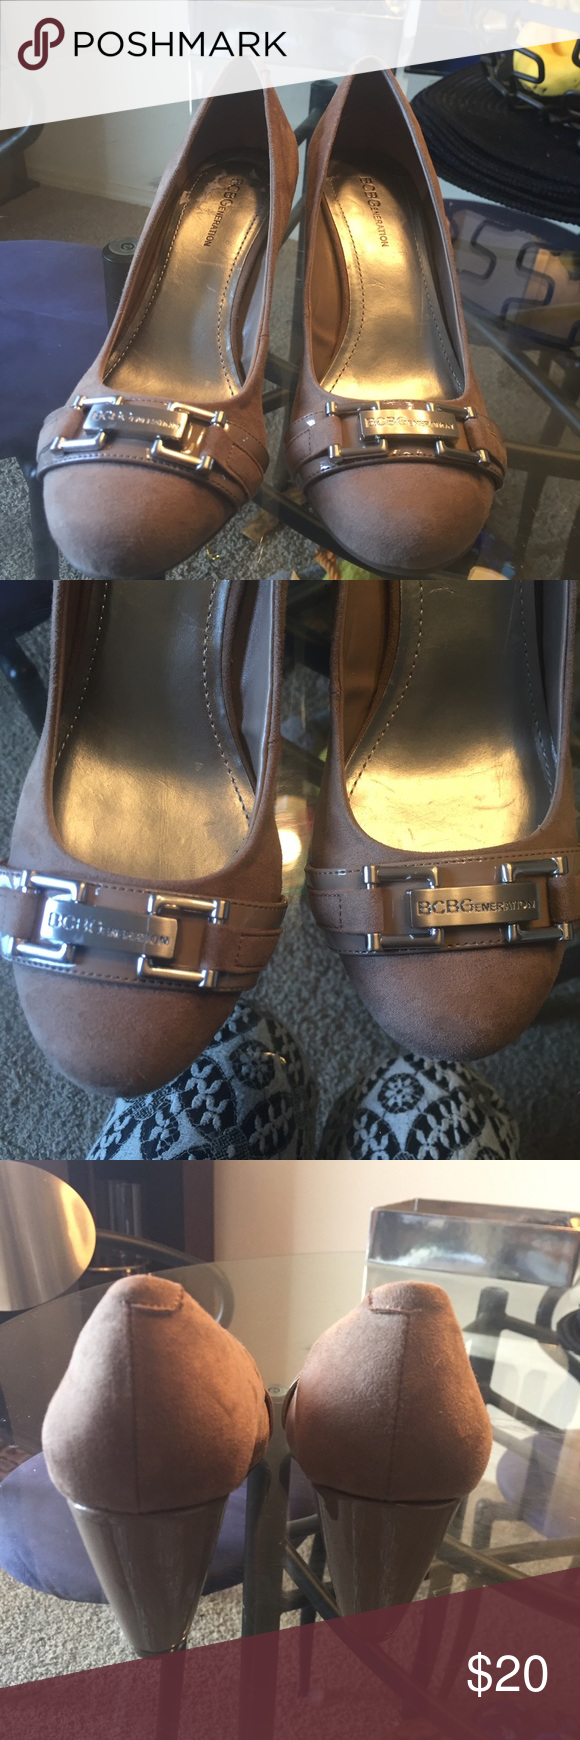 Bcbg shoes Never been worn BCBGeneration Shoes Wedges